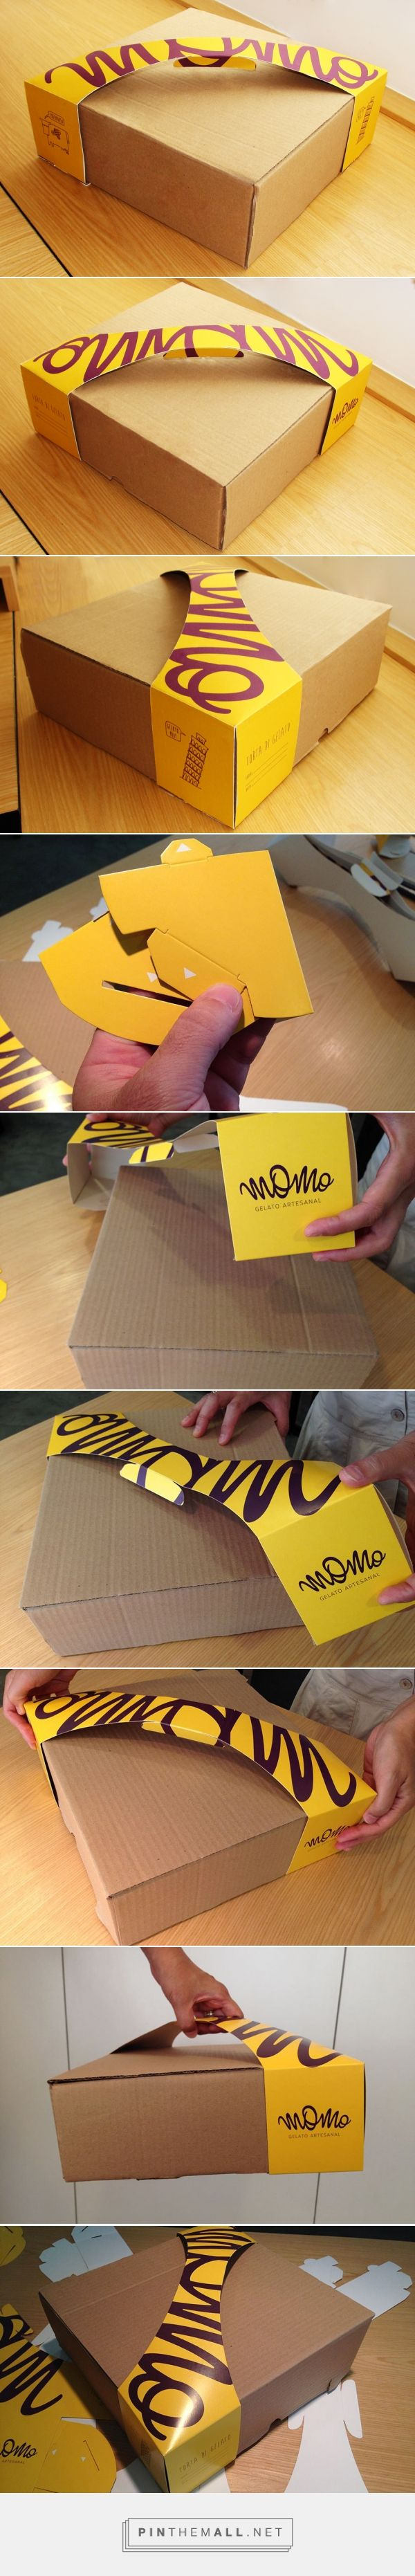 MOMO Pie box packaging design by M.Quatro Design (Brazil) - http://www.packagingoftheworld.com/2016/05/alca-para-embalagem-de-tortas-momo.html